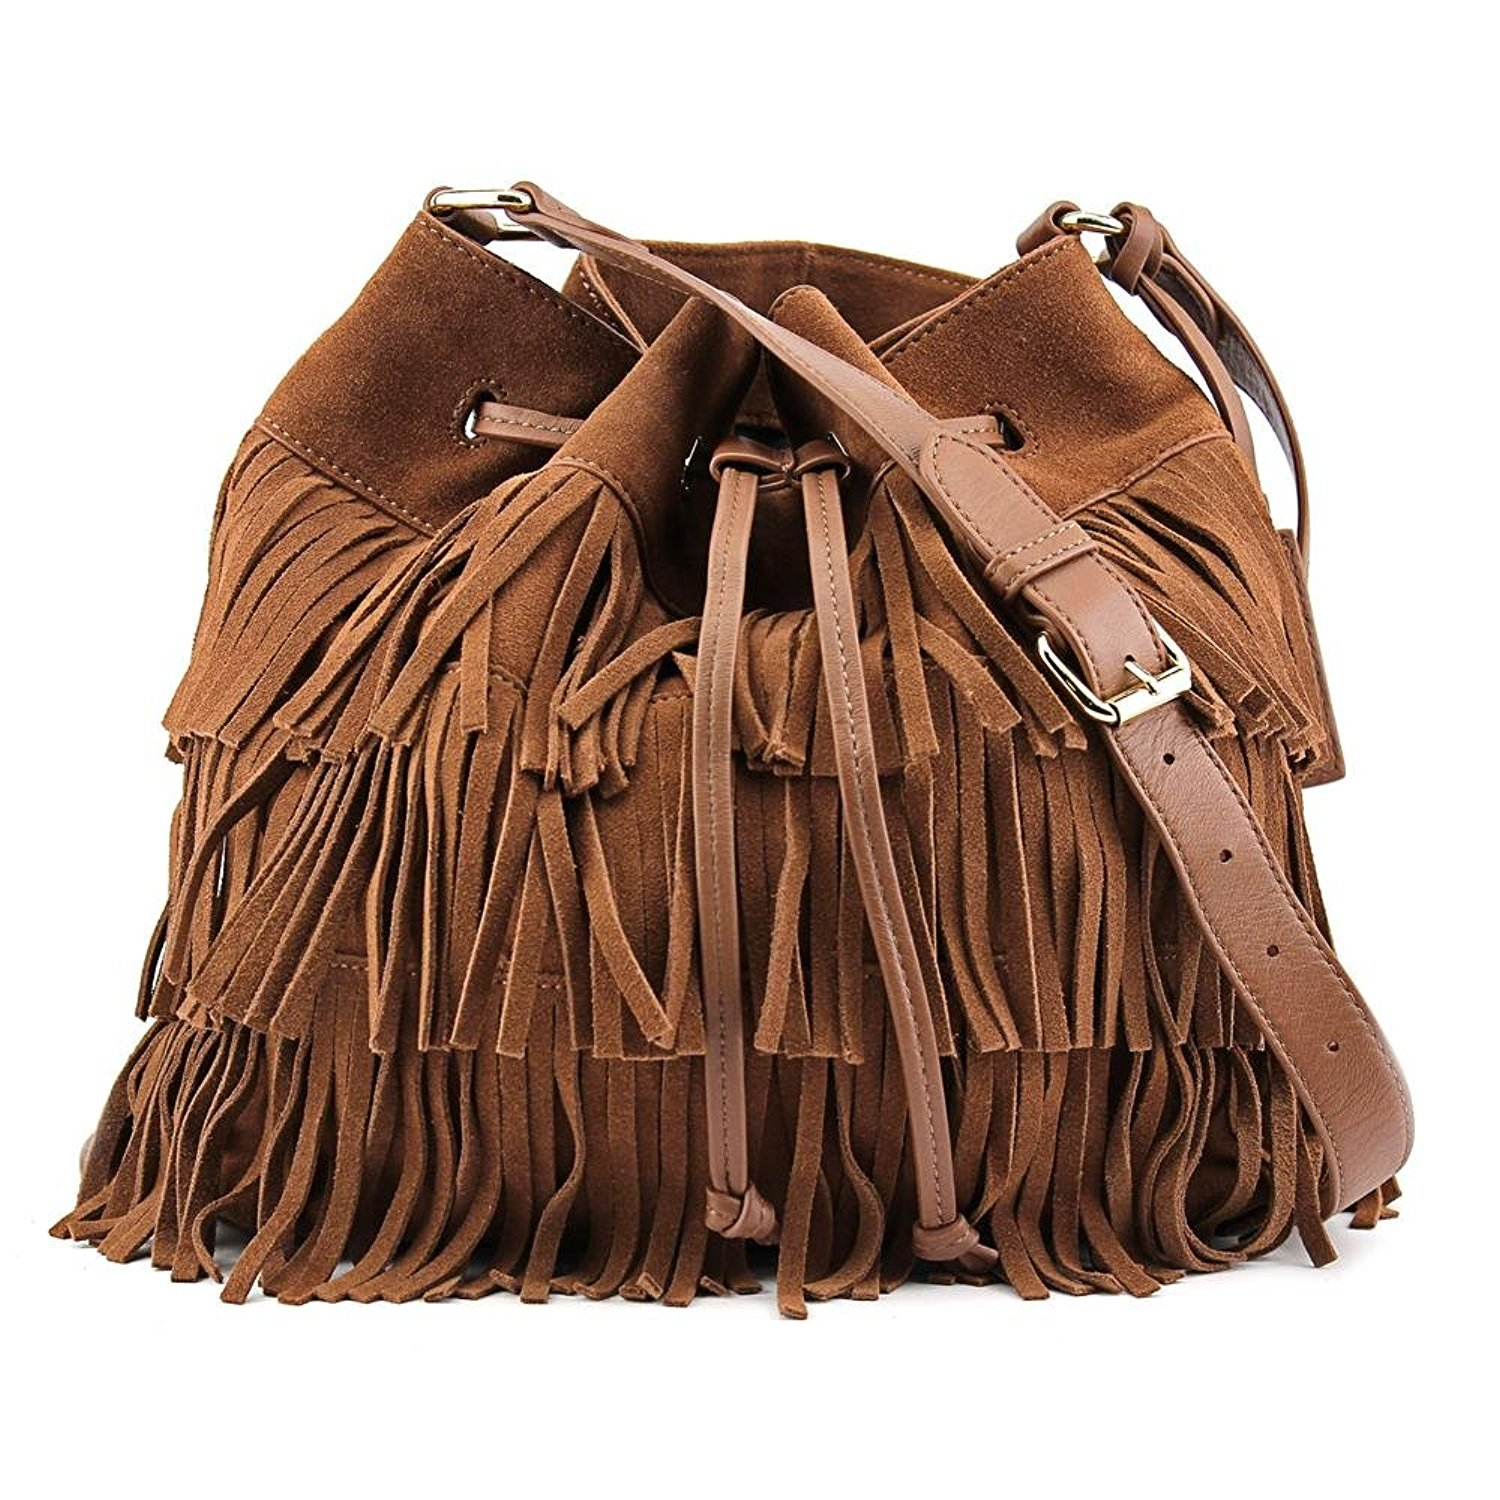 67e7f0ddfc Get Quotations · Vince Camuto Riqui Hobo Bag Women Brown Hobo